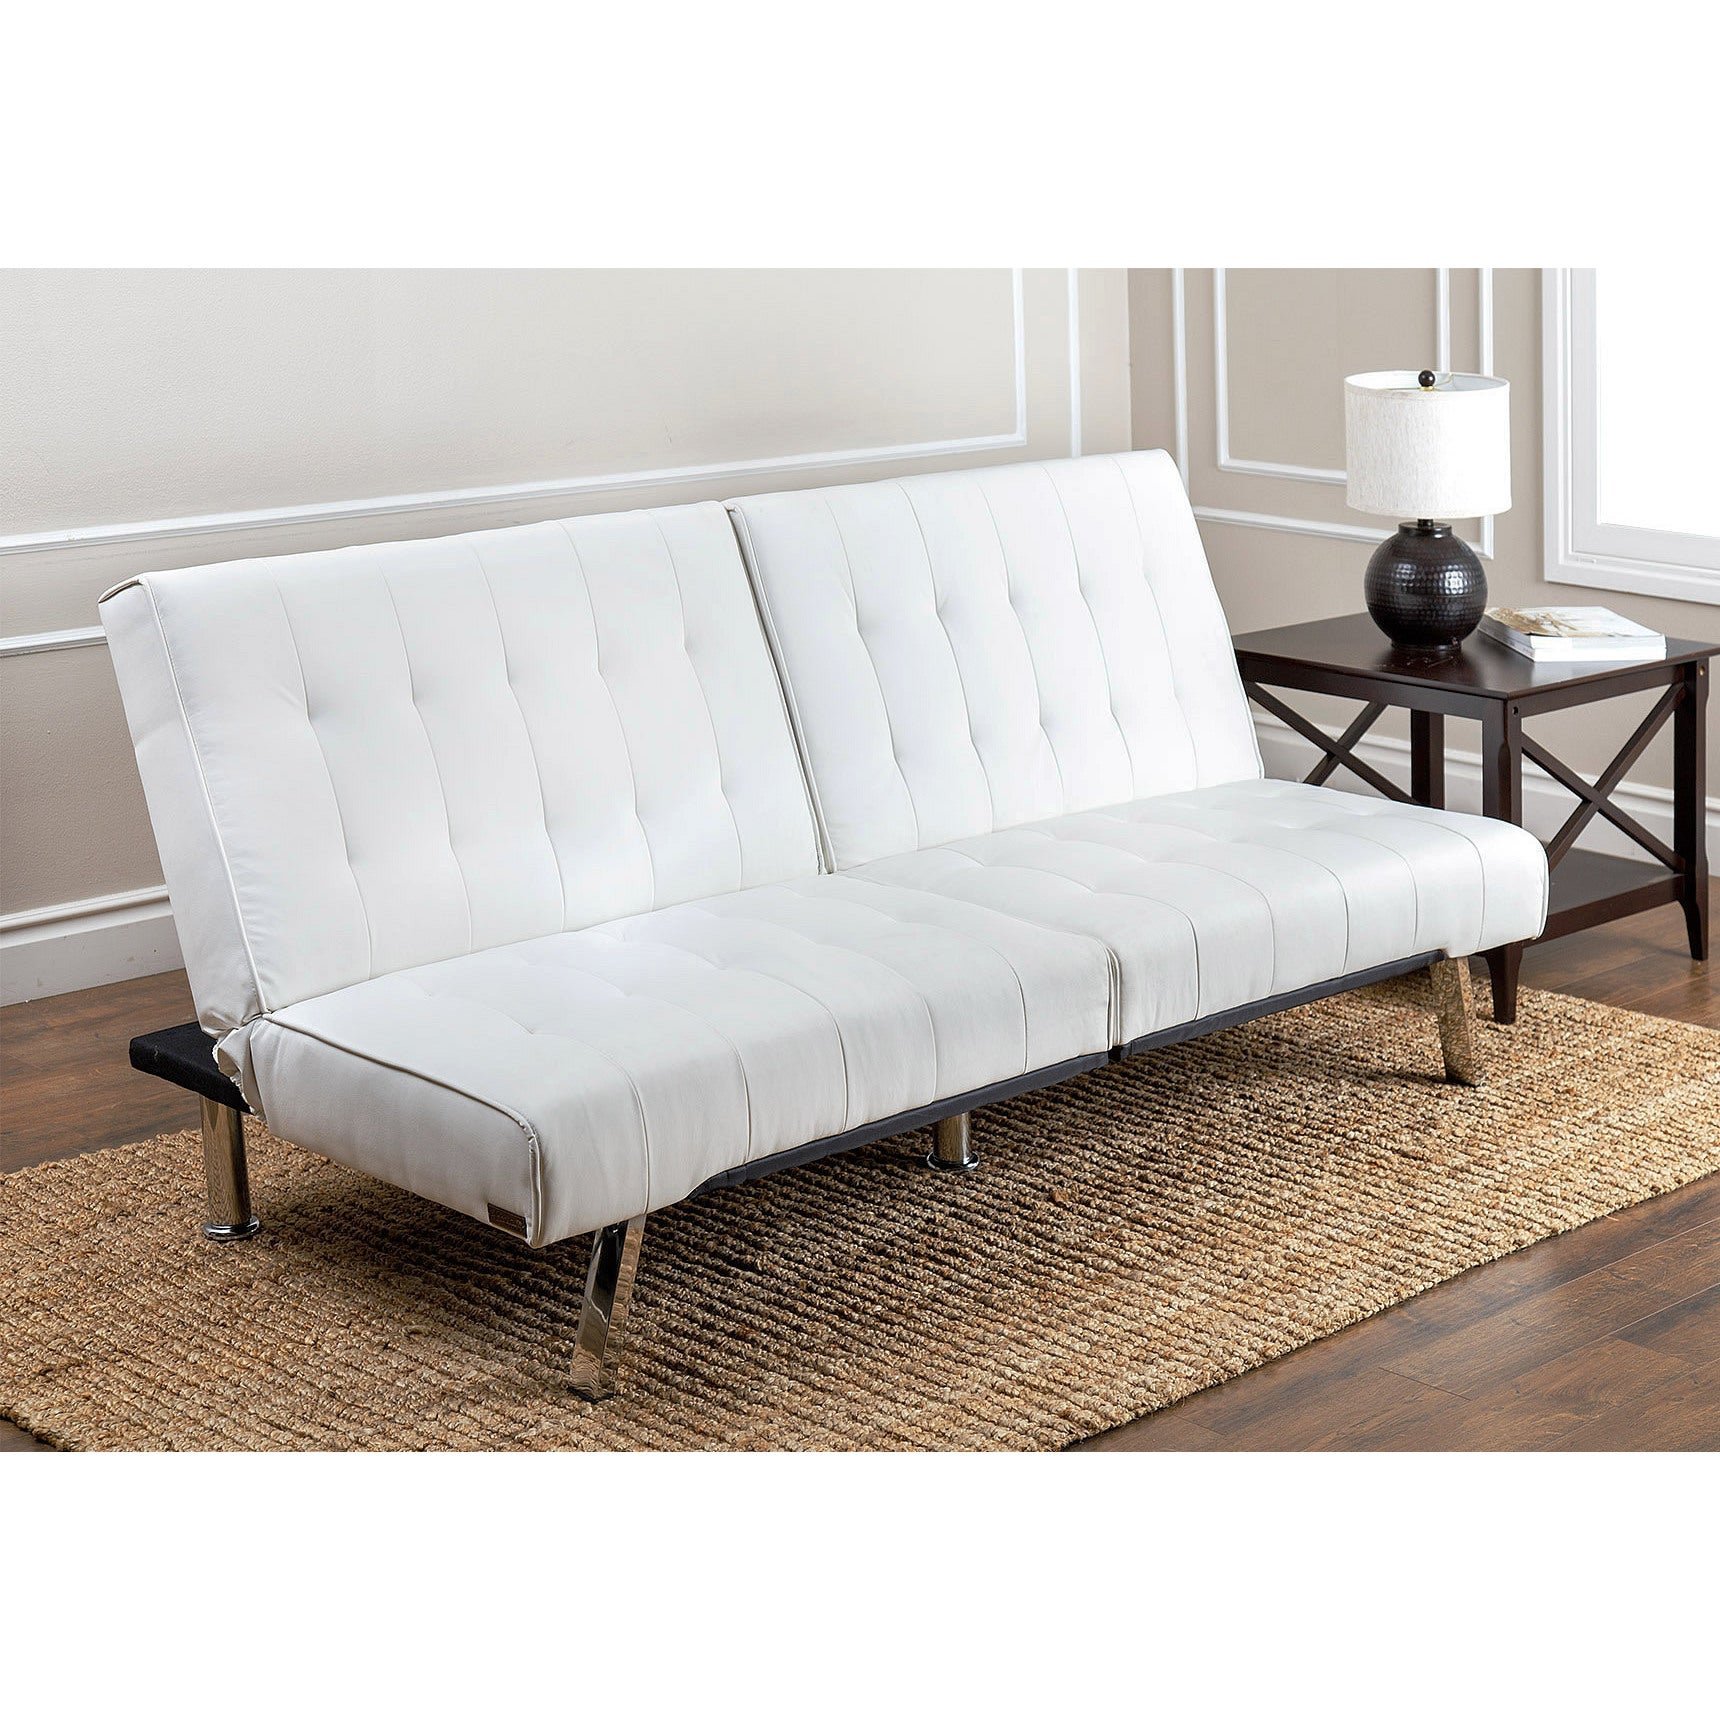 Abbyson Jackson Ivory Leather Foldable Futon Sofa Bed On Free Shipping Today 9829805